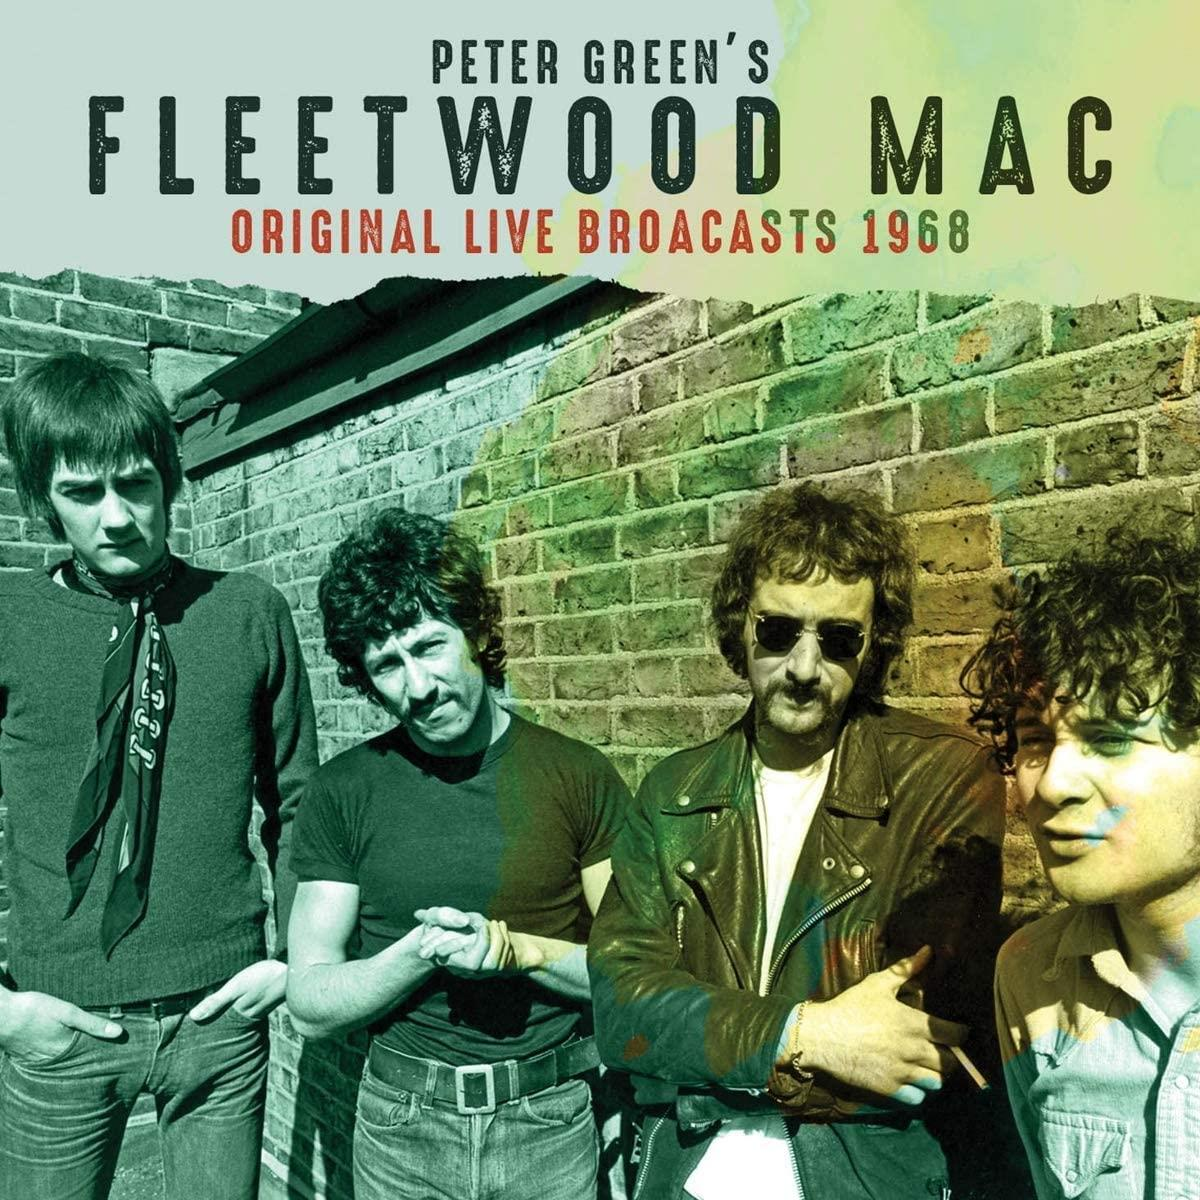 LCLPC5008 London Calling  Fleetwood Mac Original Live Broadcasts 1969 - LTD (LP)